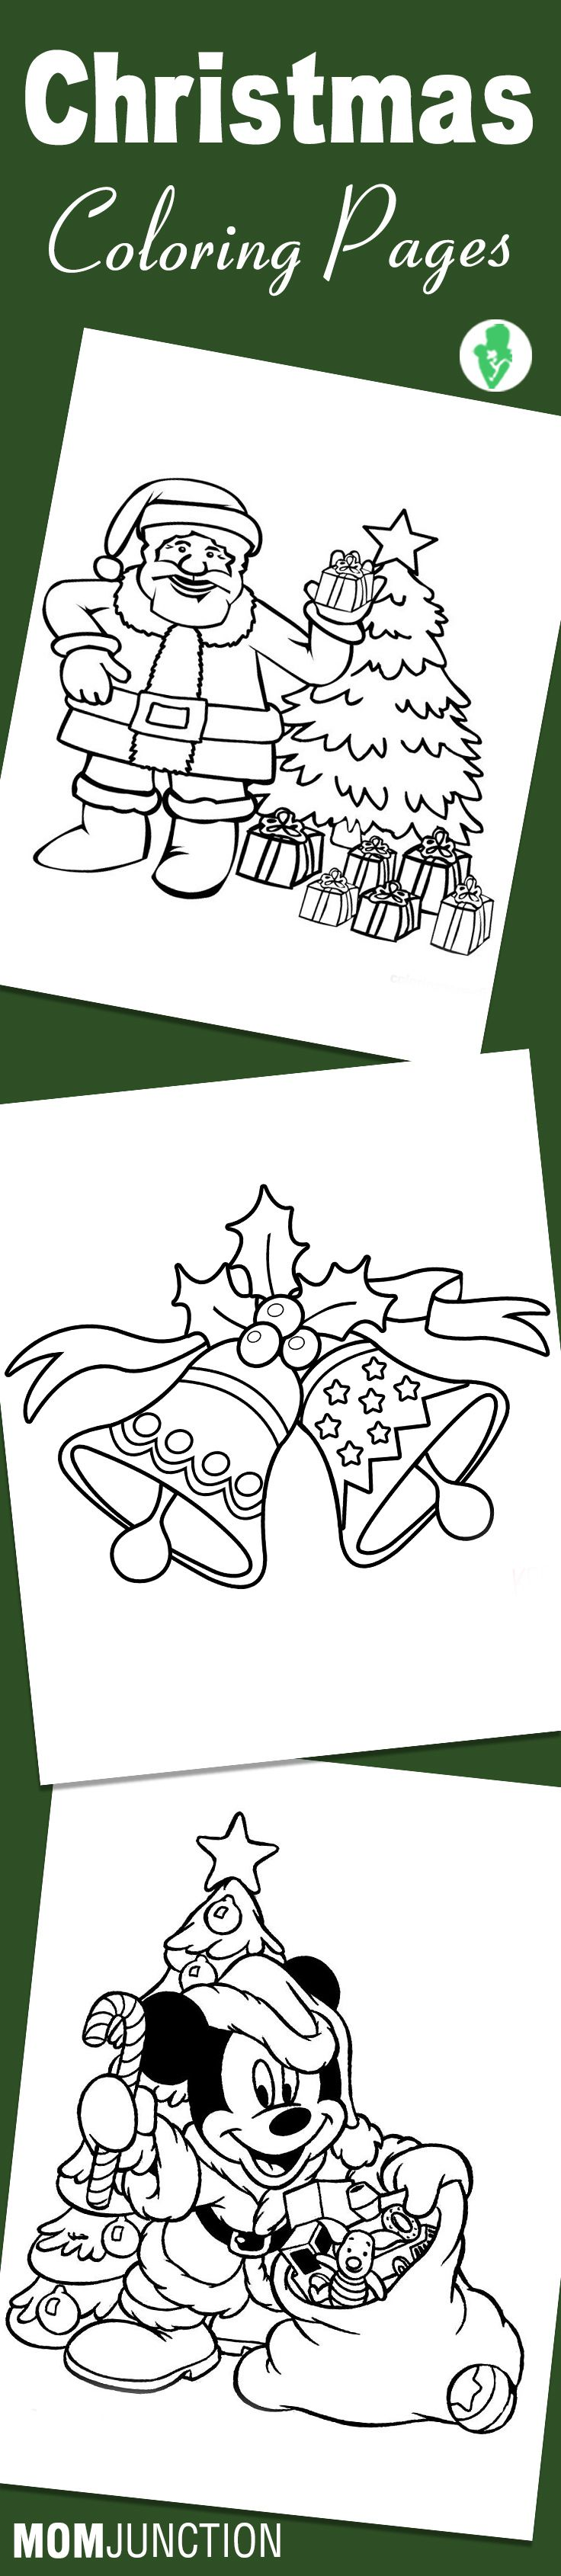 Top 25 Free Printable Christmas Coloring Pages Online | Colorear ...